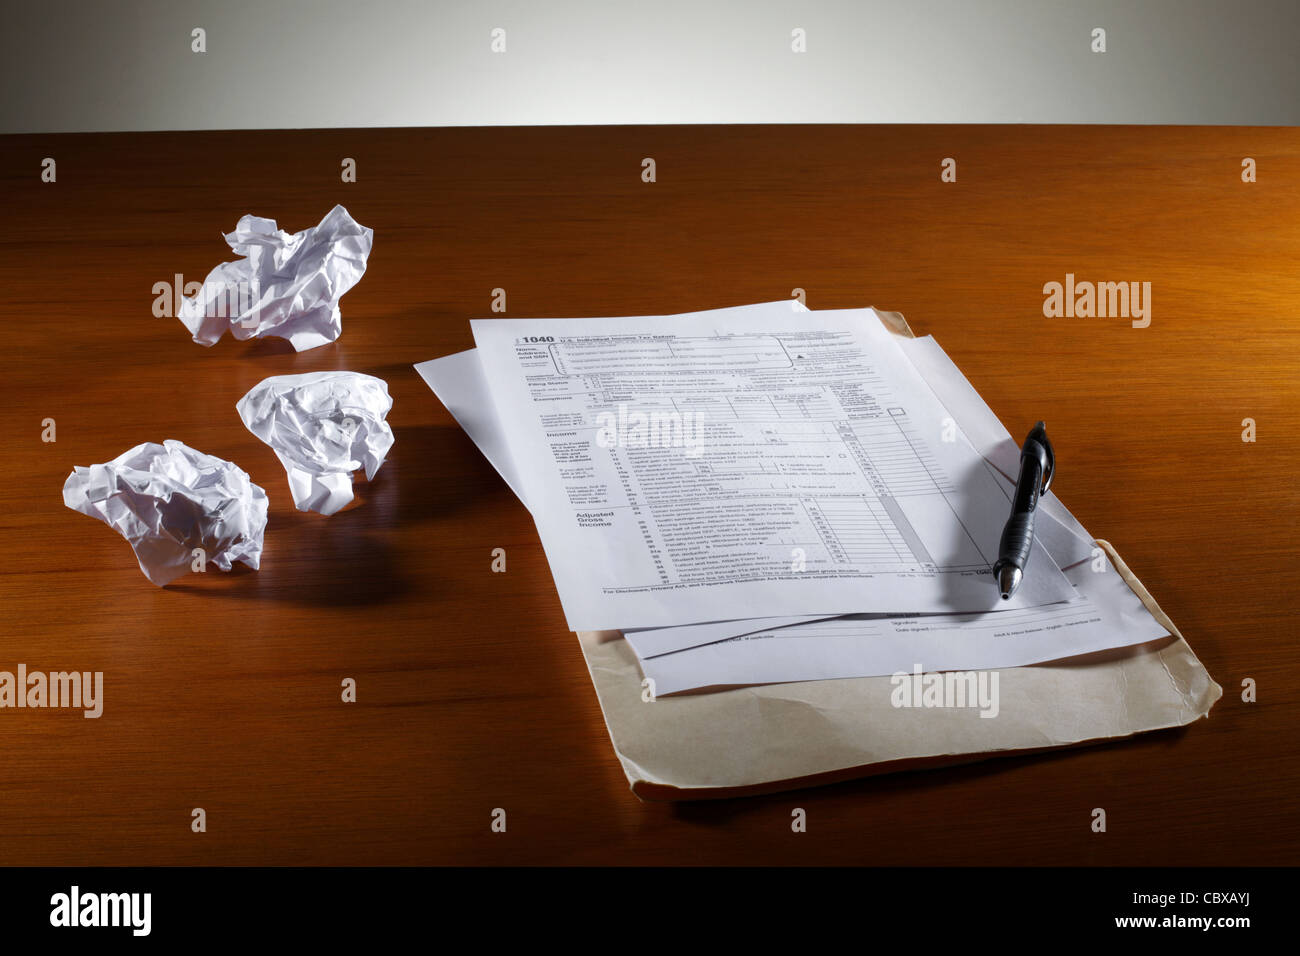 Crumpled paper and tax form on desk - Stock Image